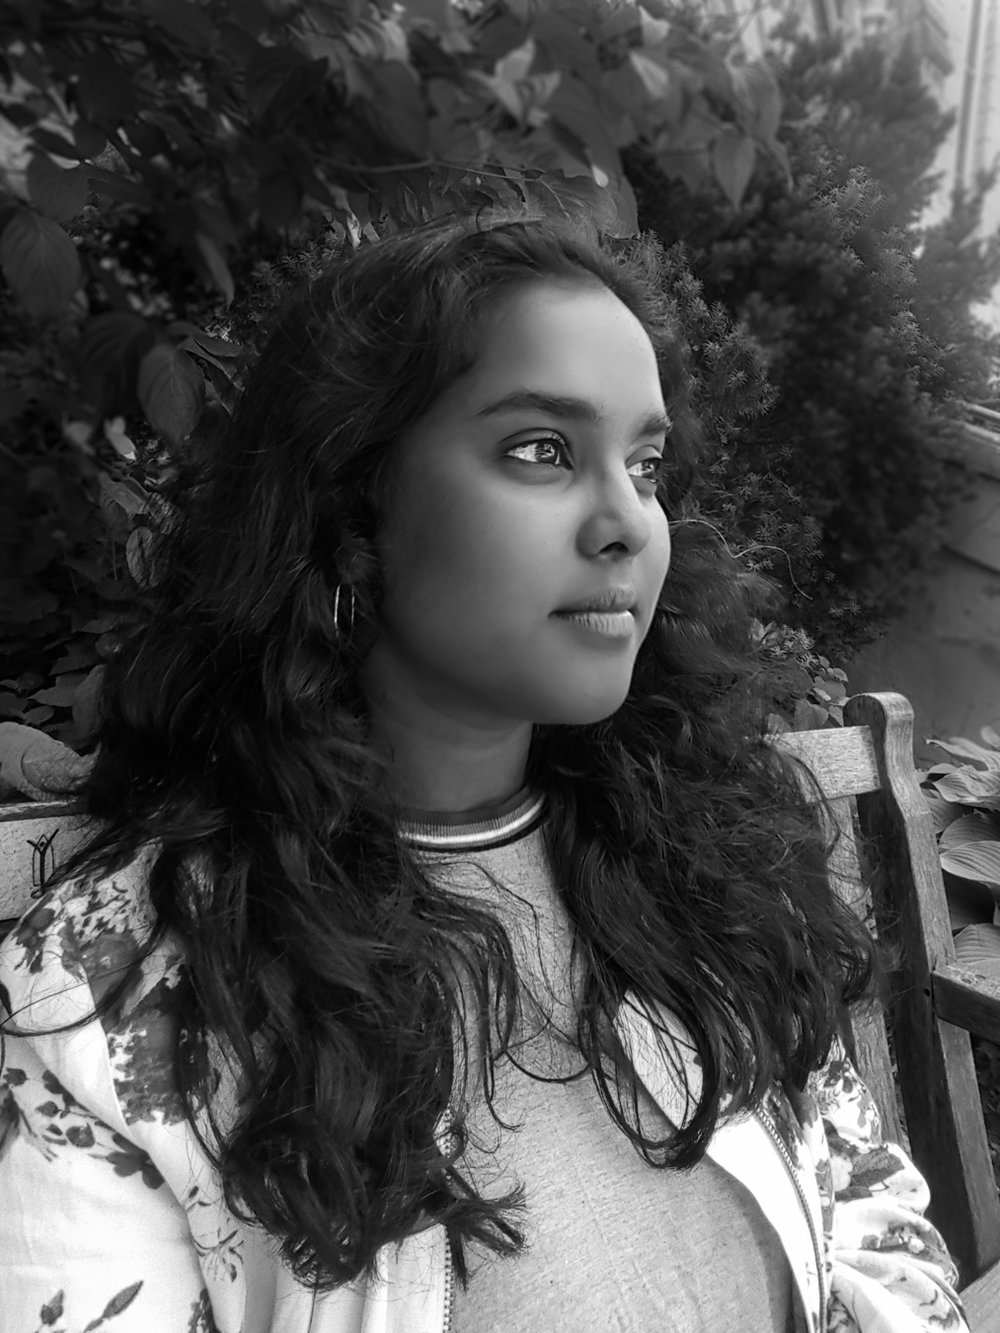 Black and white photograph of Kavya Yoganathan. She is in 3/4 profile, and has dark wavy hair.